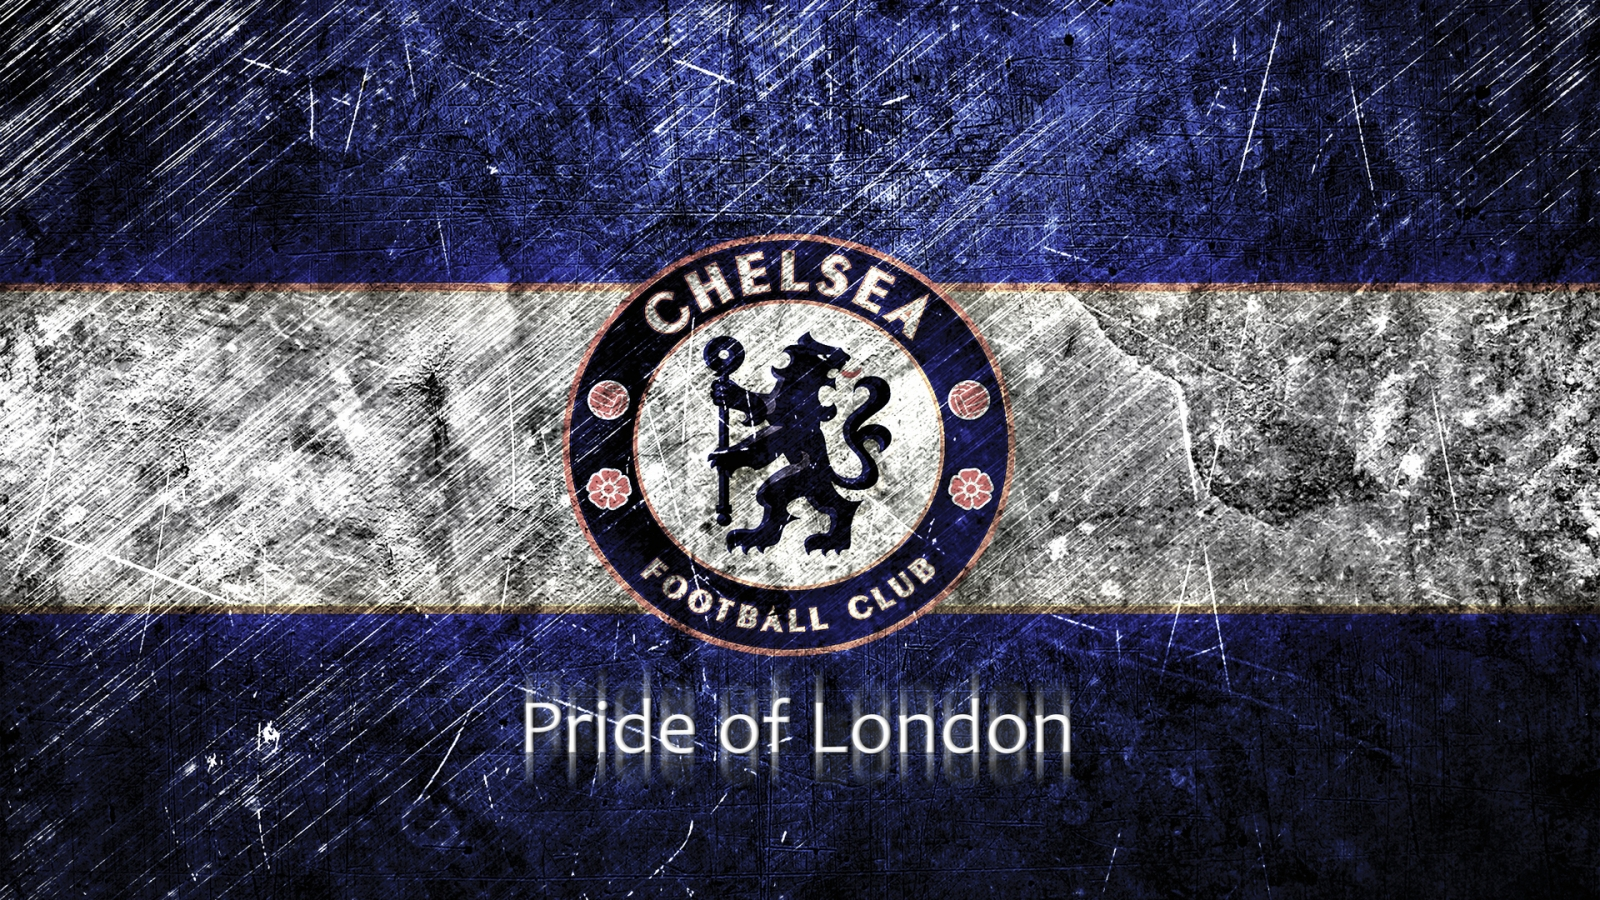 Chelsea Pride of London for 1600 x 900 HDTV resolution